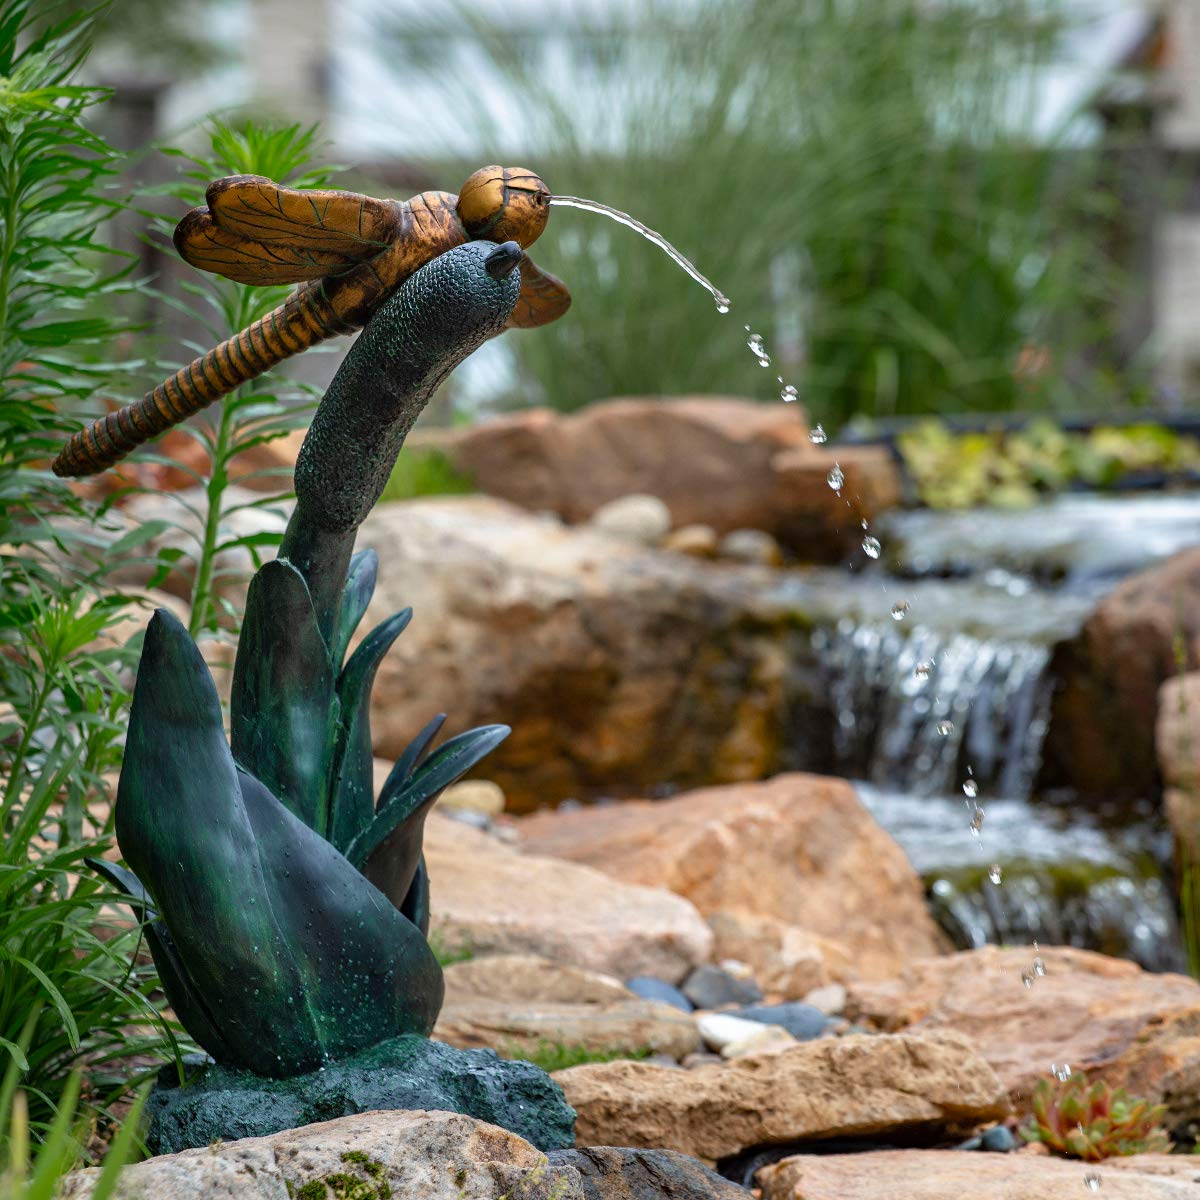 Aquascape Dragonfly Spitter Fountain for Ponds and Water Gardens | 78303 by Aquascape